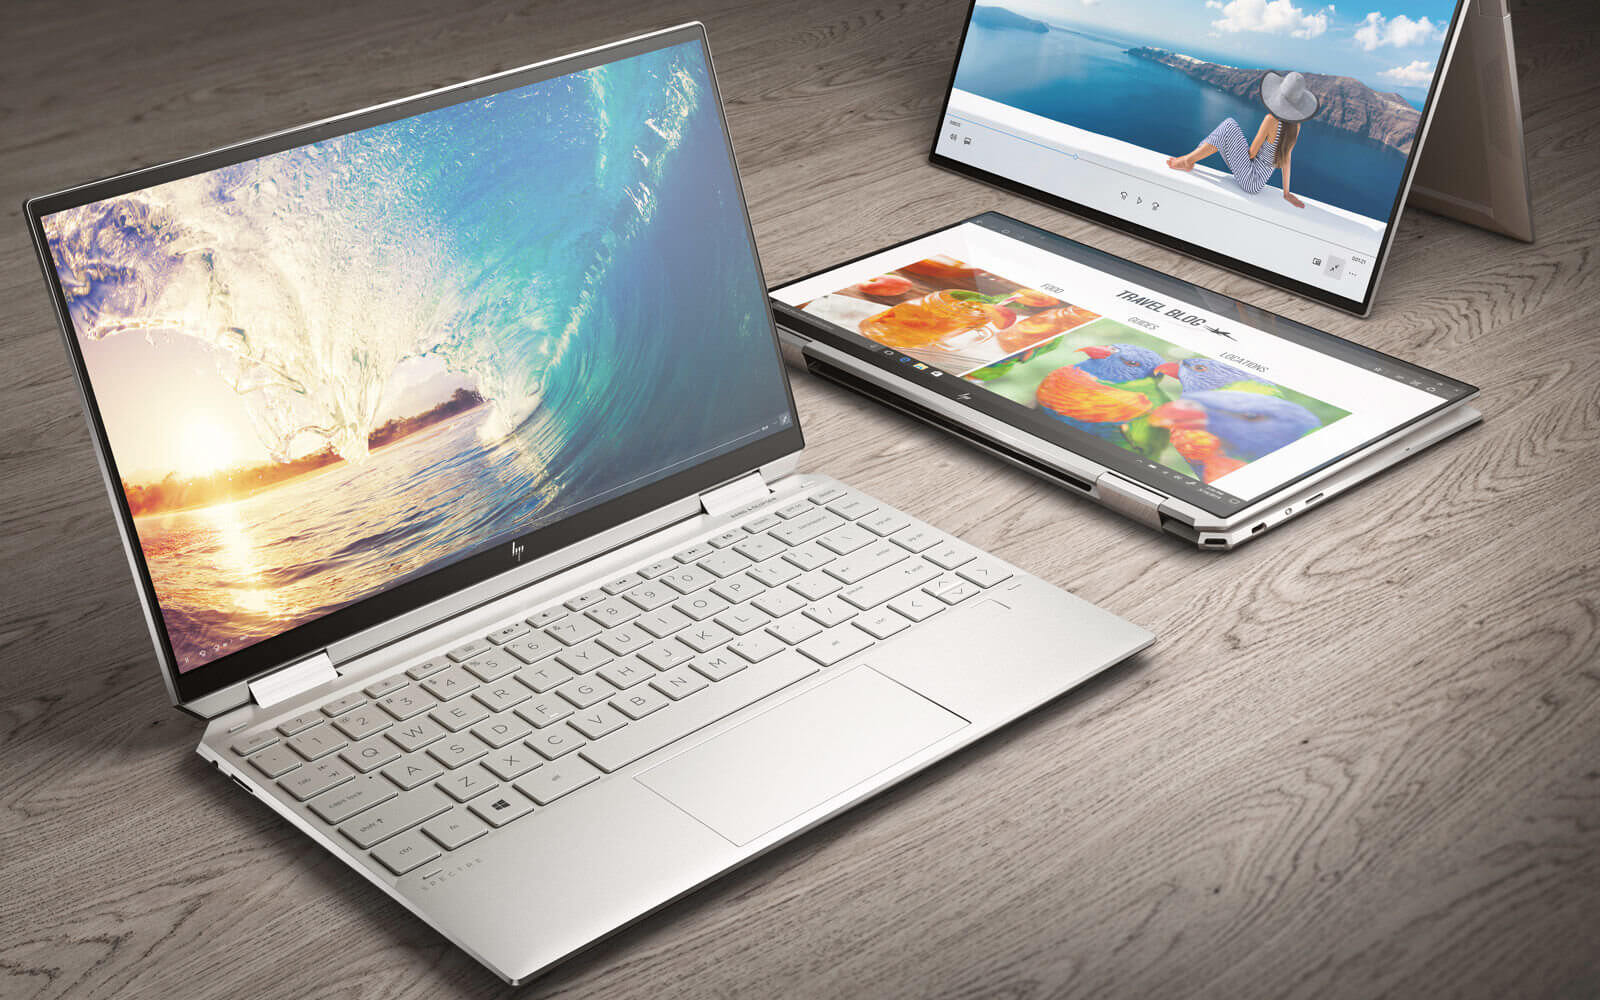 HP shores up Spectre x360 13 with 10th-gen Intel CPUs, 4K OLED display and up to 22 hours of battery life